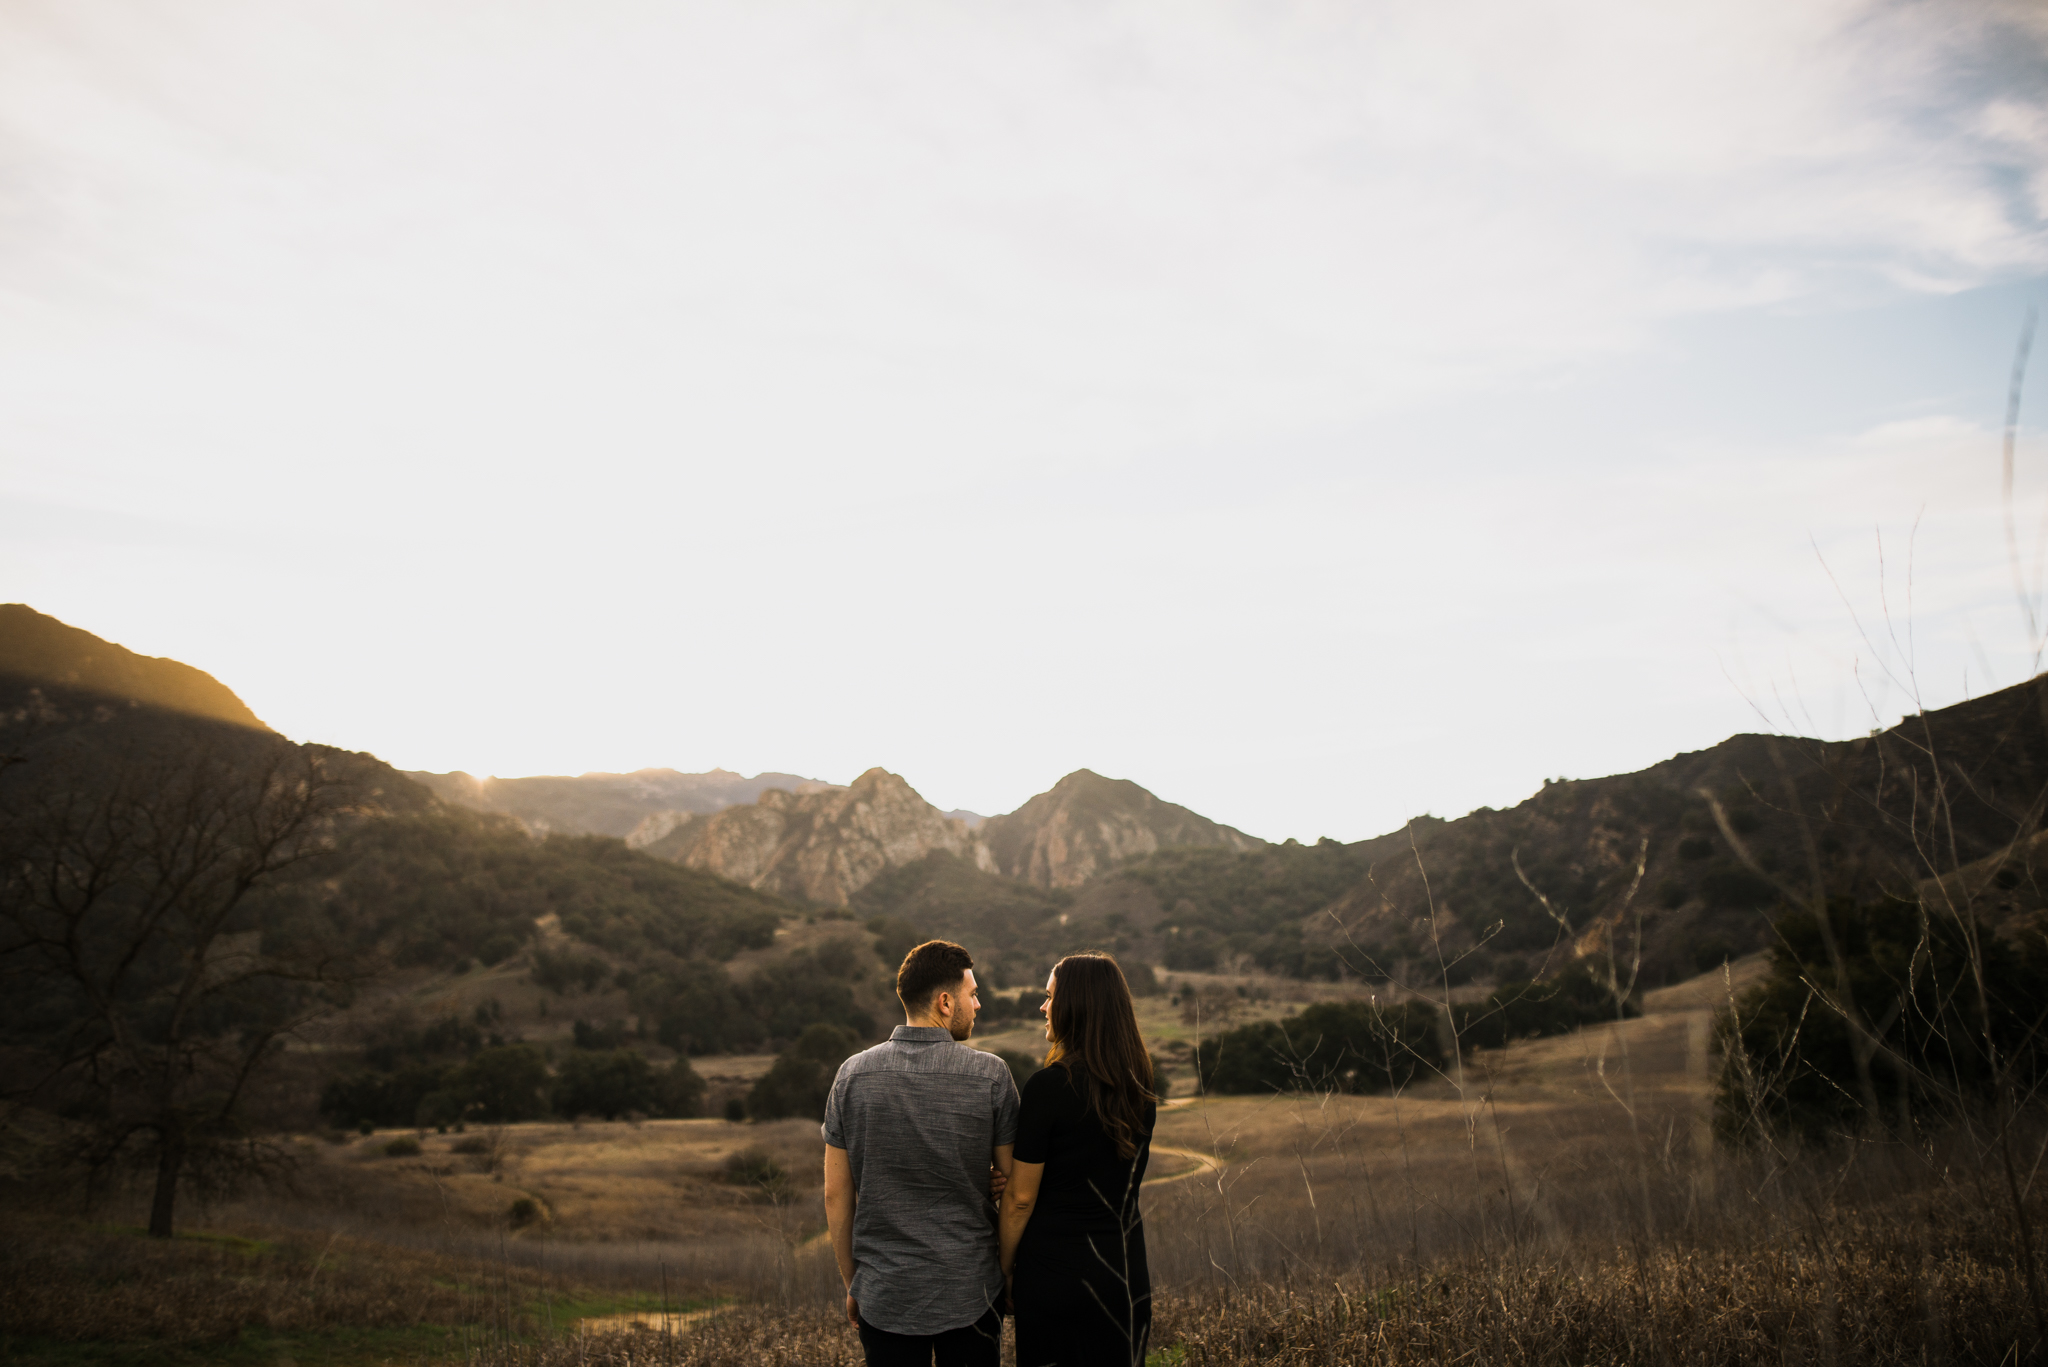 ©Isaiah-&-Taylor-Photography---Malibu-Field-Engagement,-Southern-California-Wedding-Photographer-015.jpg